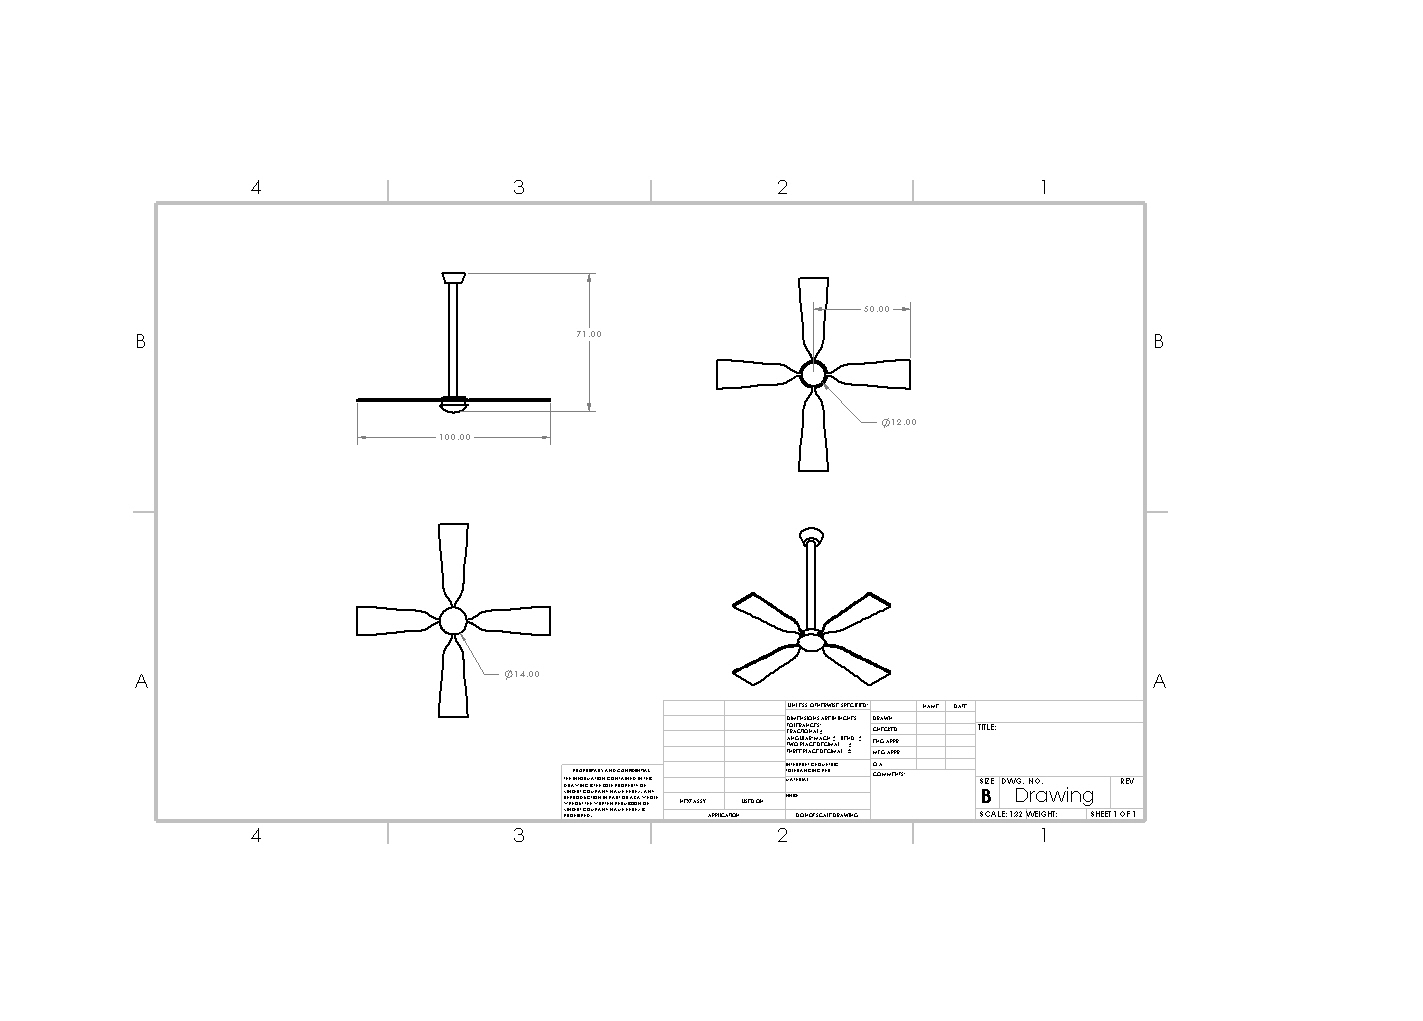 The links to my project summary, ceiling fan drawings and